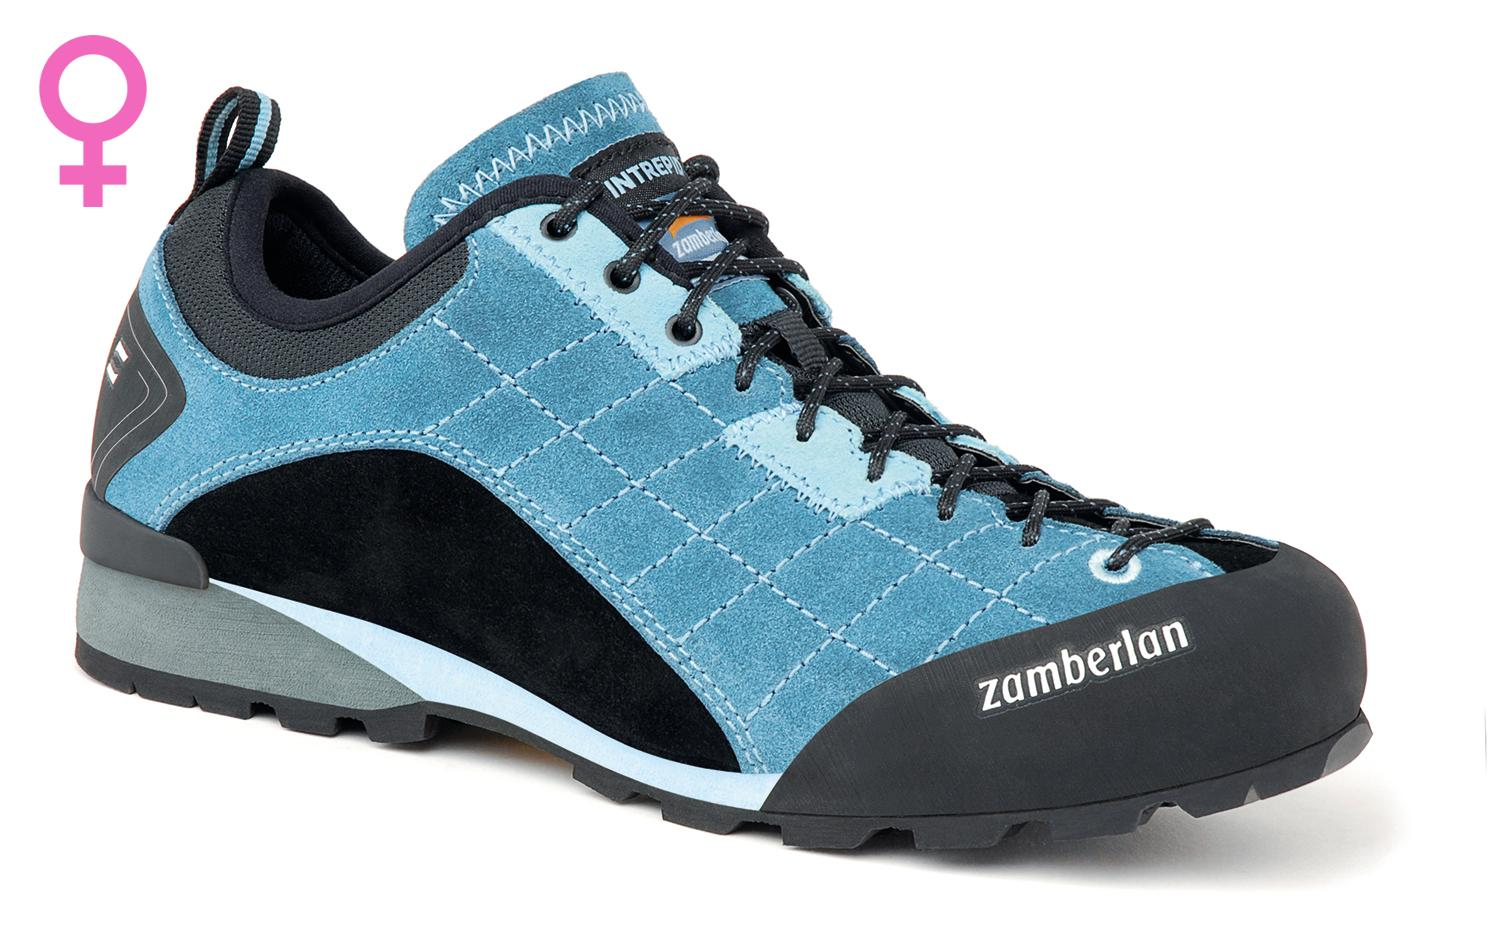 125 INTREPID RR WNS   -   Alpine approach  Shoes   -   Octane